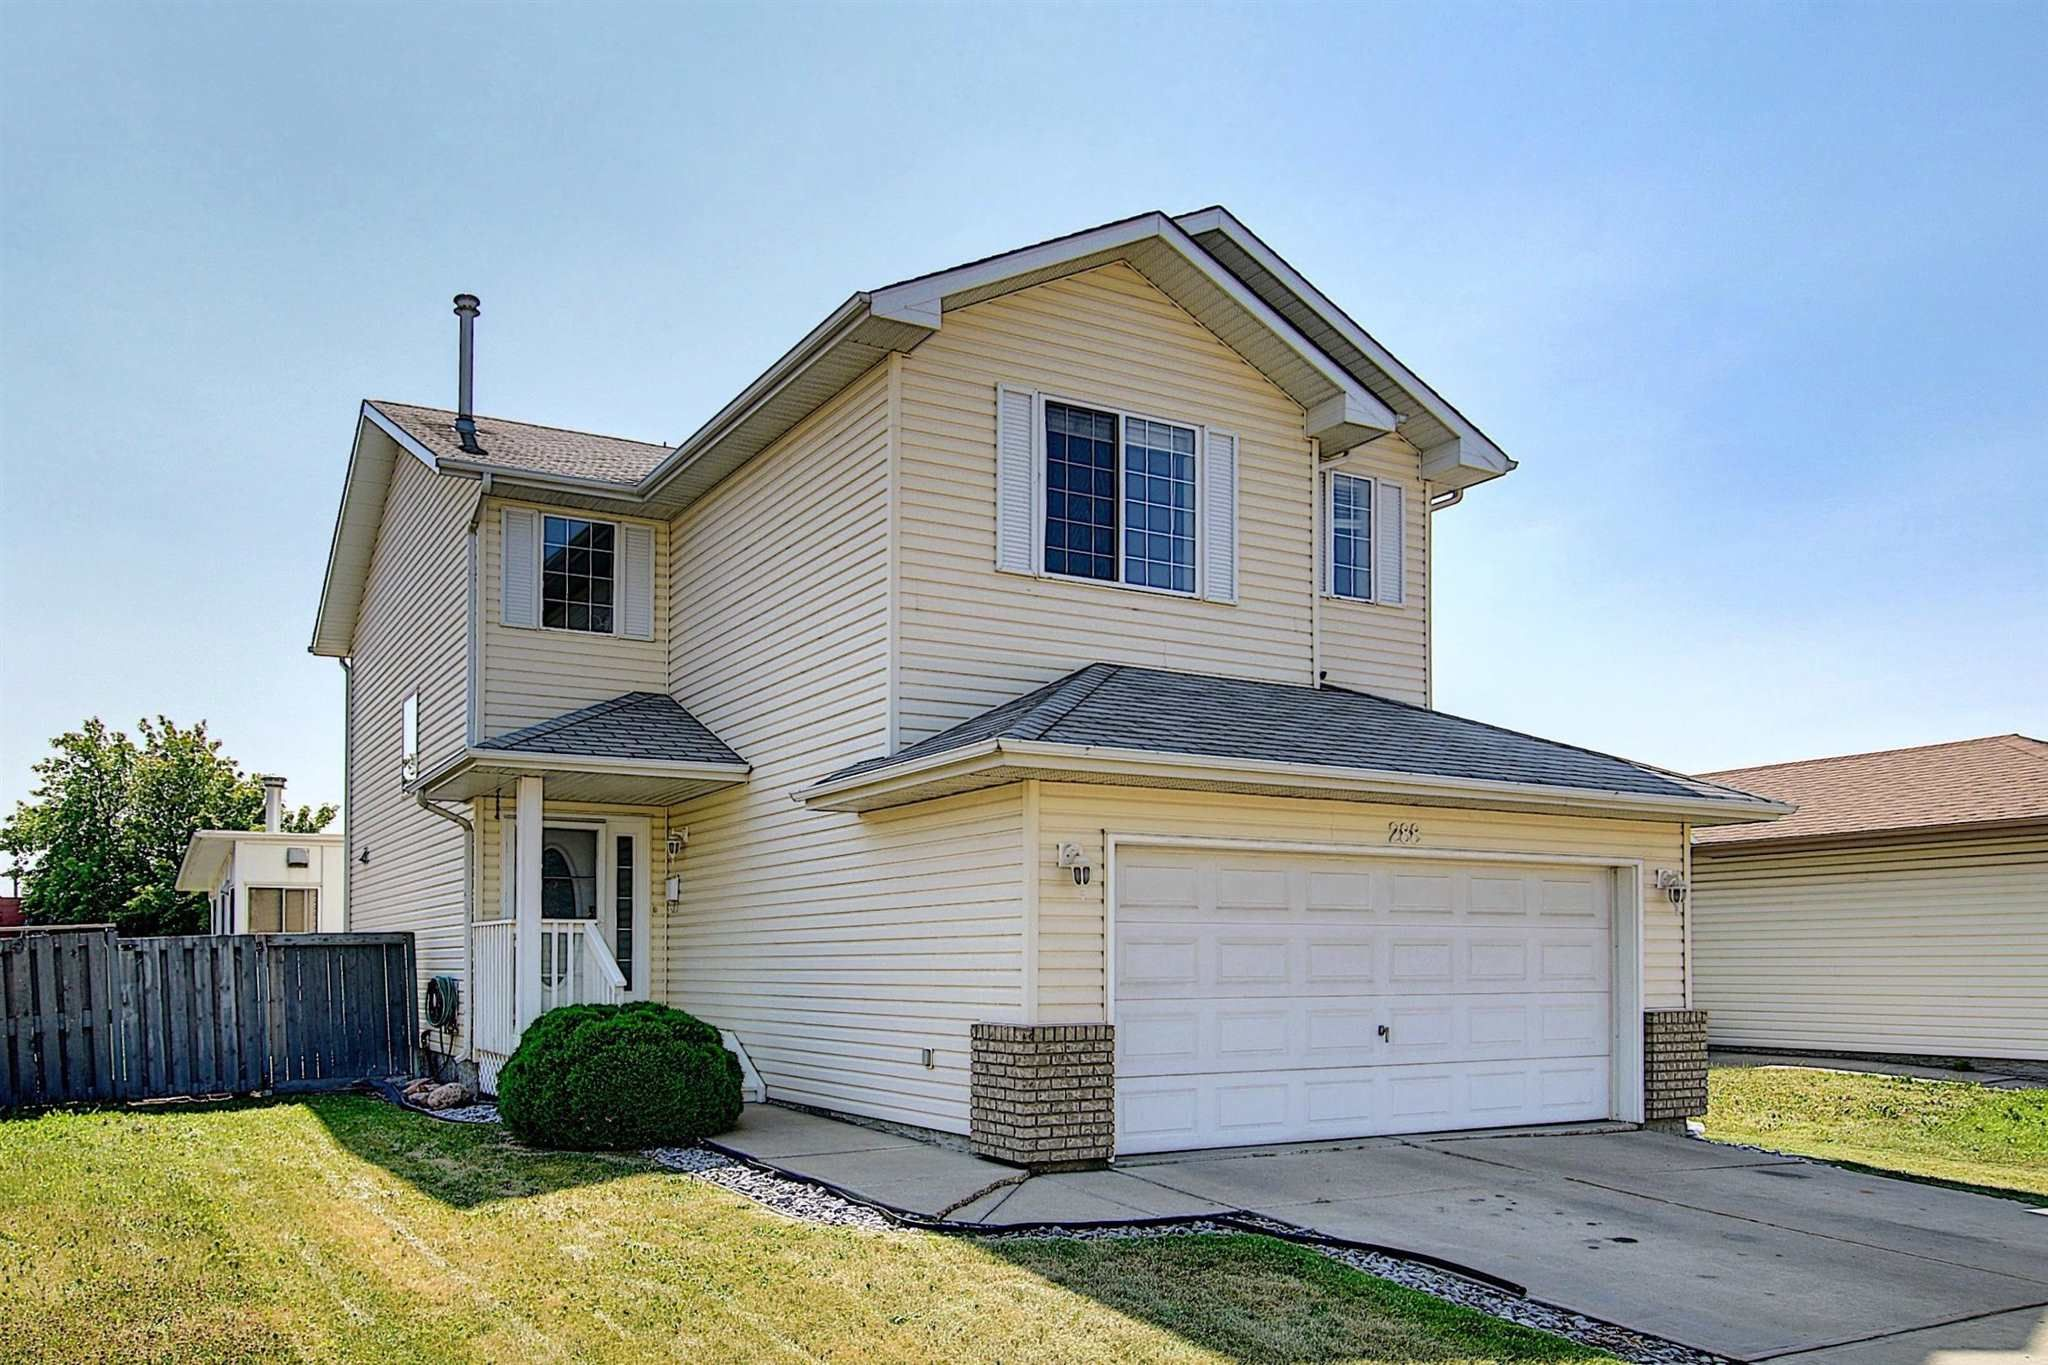 Main Photo: 288 Dunvegan Road in Edmonton: Zone 01 House for sale : MLS®# E4256564